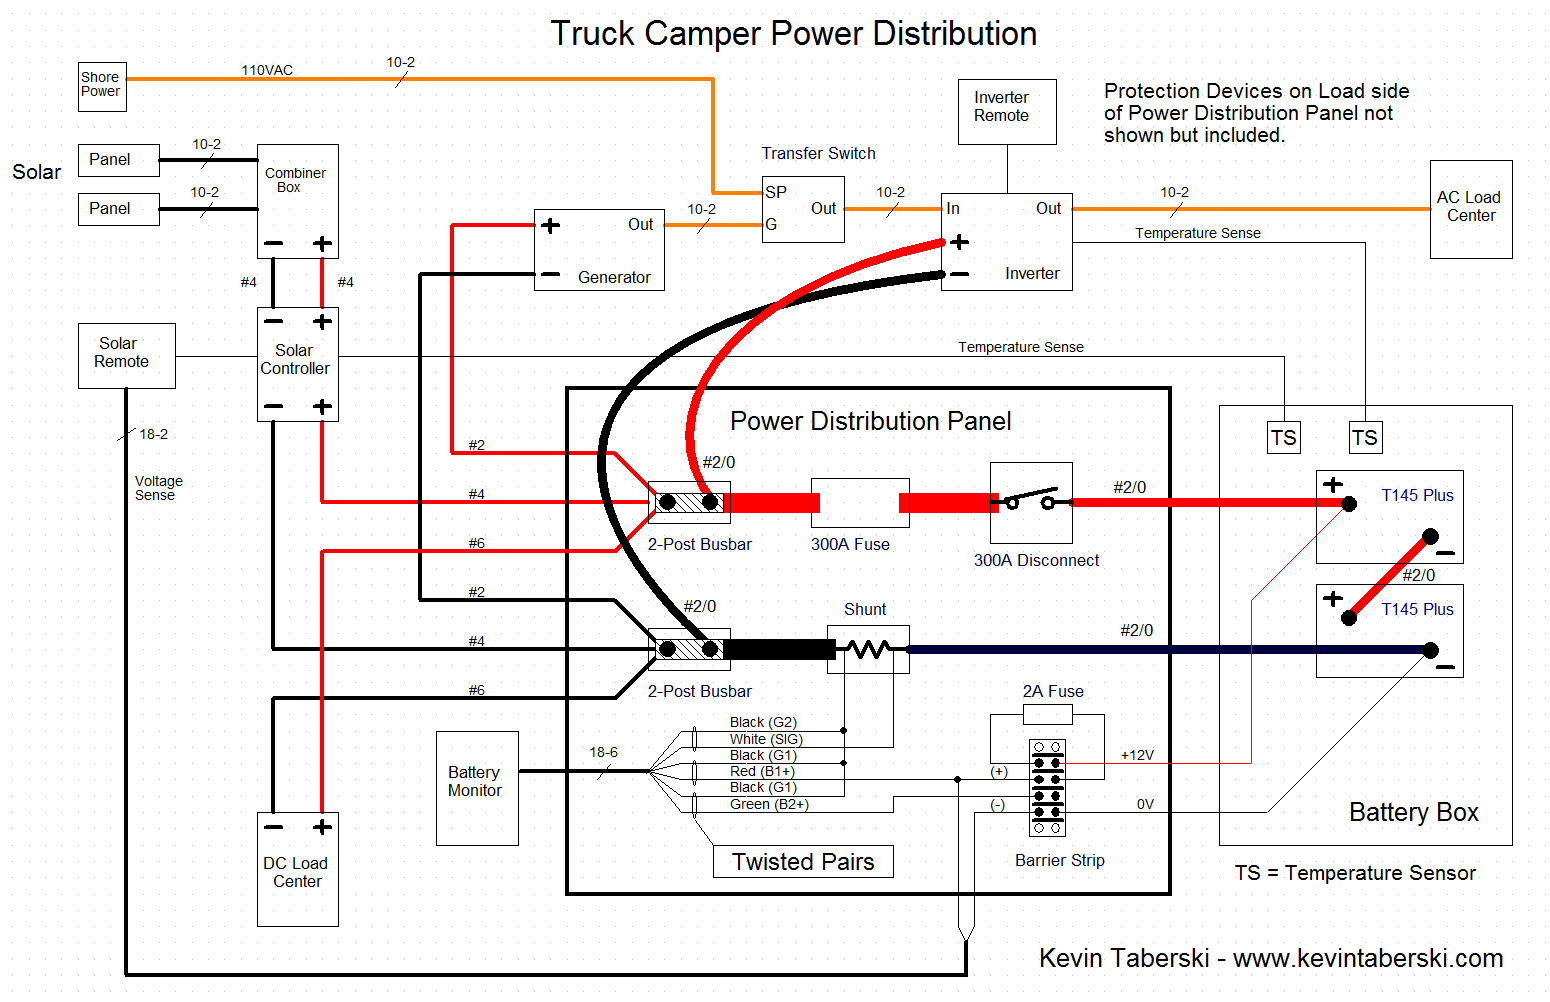 Truck Camper Inverter Kevin Taberski Hobart Battery Charger Wiring Diagram Power Distribution